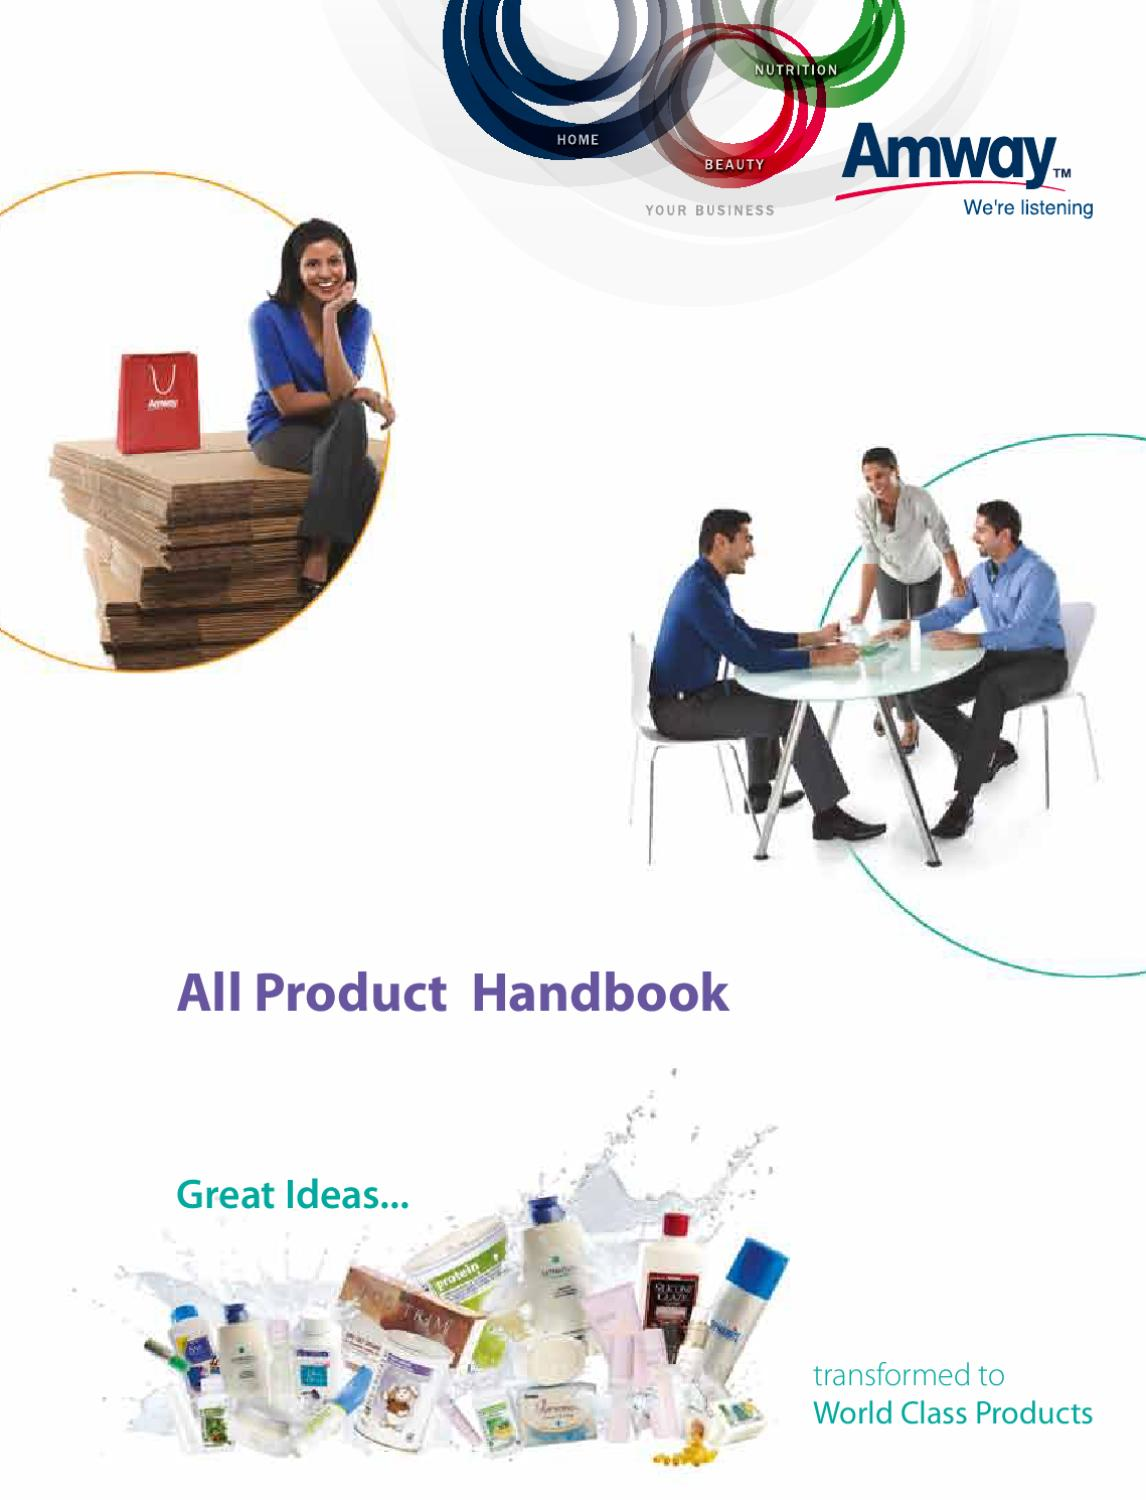 """This core concept of direct selling is reflected in the Direct Selling Guidelines issued by the government of India in which prohibits the sale of products of a direct selling company through ecommerce platforms, without the written consent of the direct selling company,"" an Amway spokesperson said in an emailed response, adding the company takes consumer safety seriously."